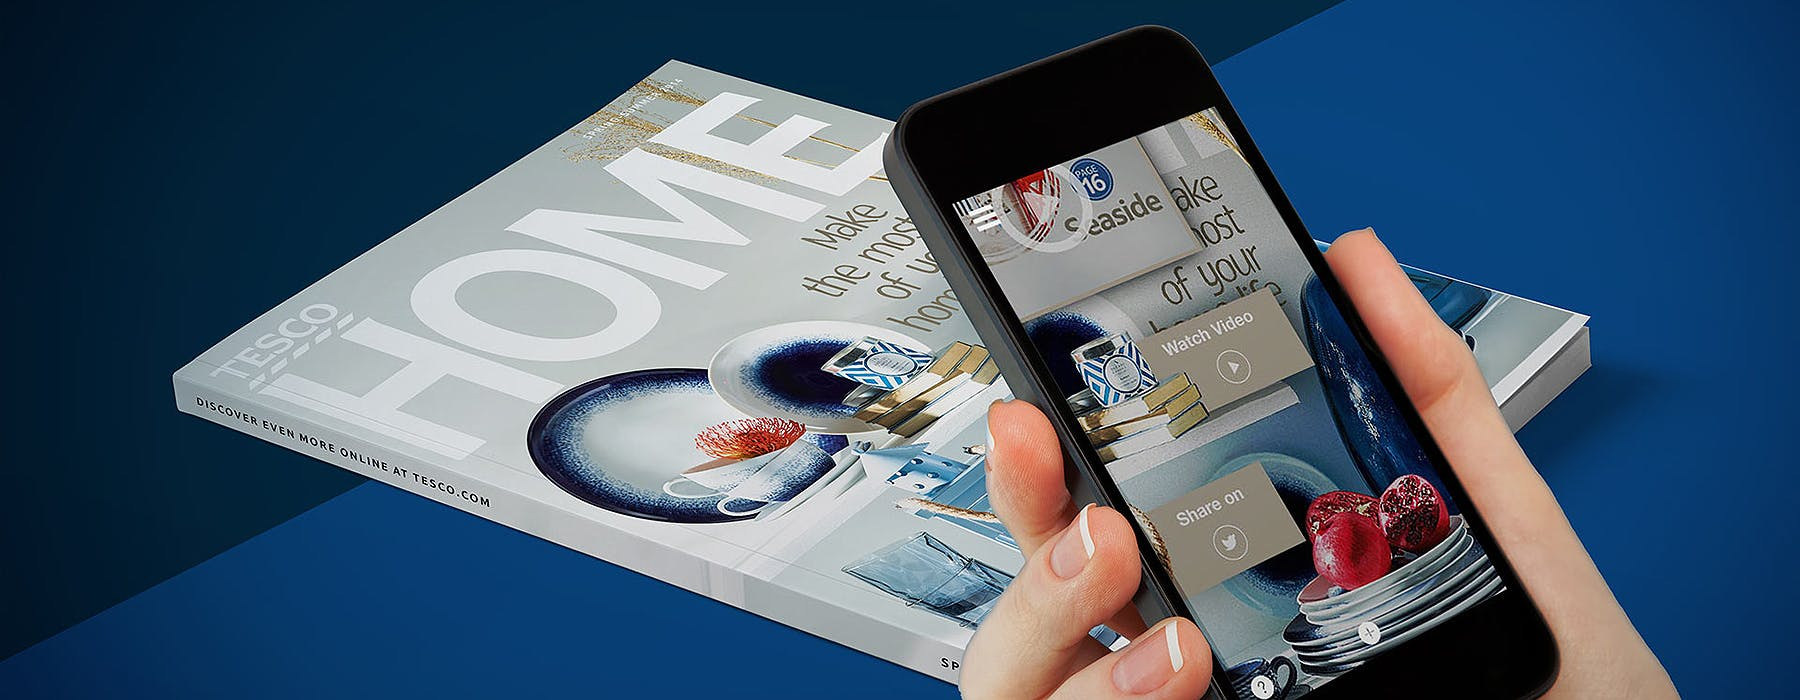 Augmented reality: Finally enriching the customer experience with more than simple gimmicks